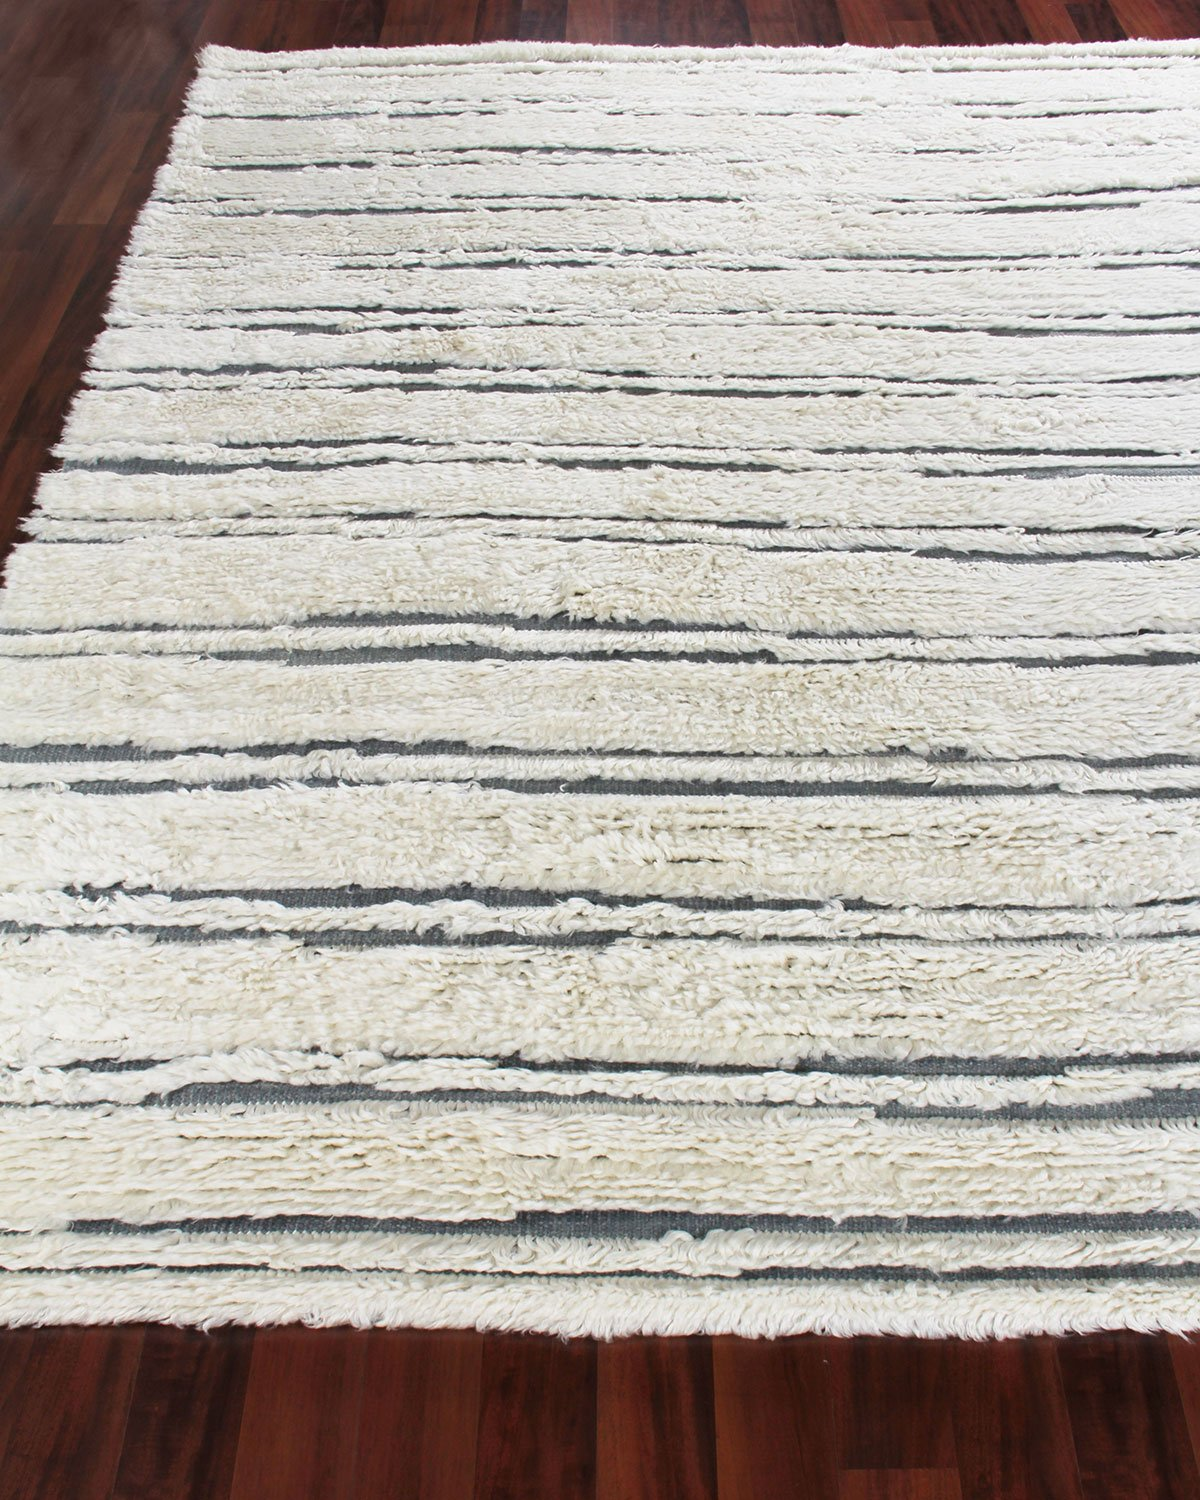 Romon Hand-Knotted Rug, 6' x 9' Product Image